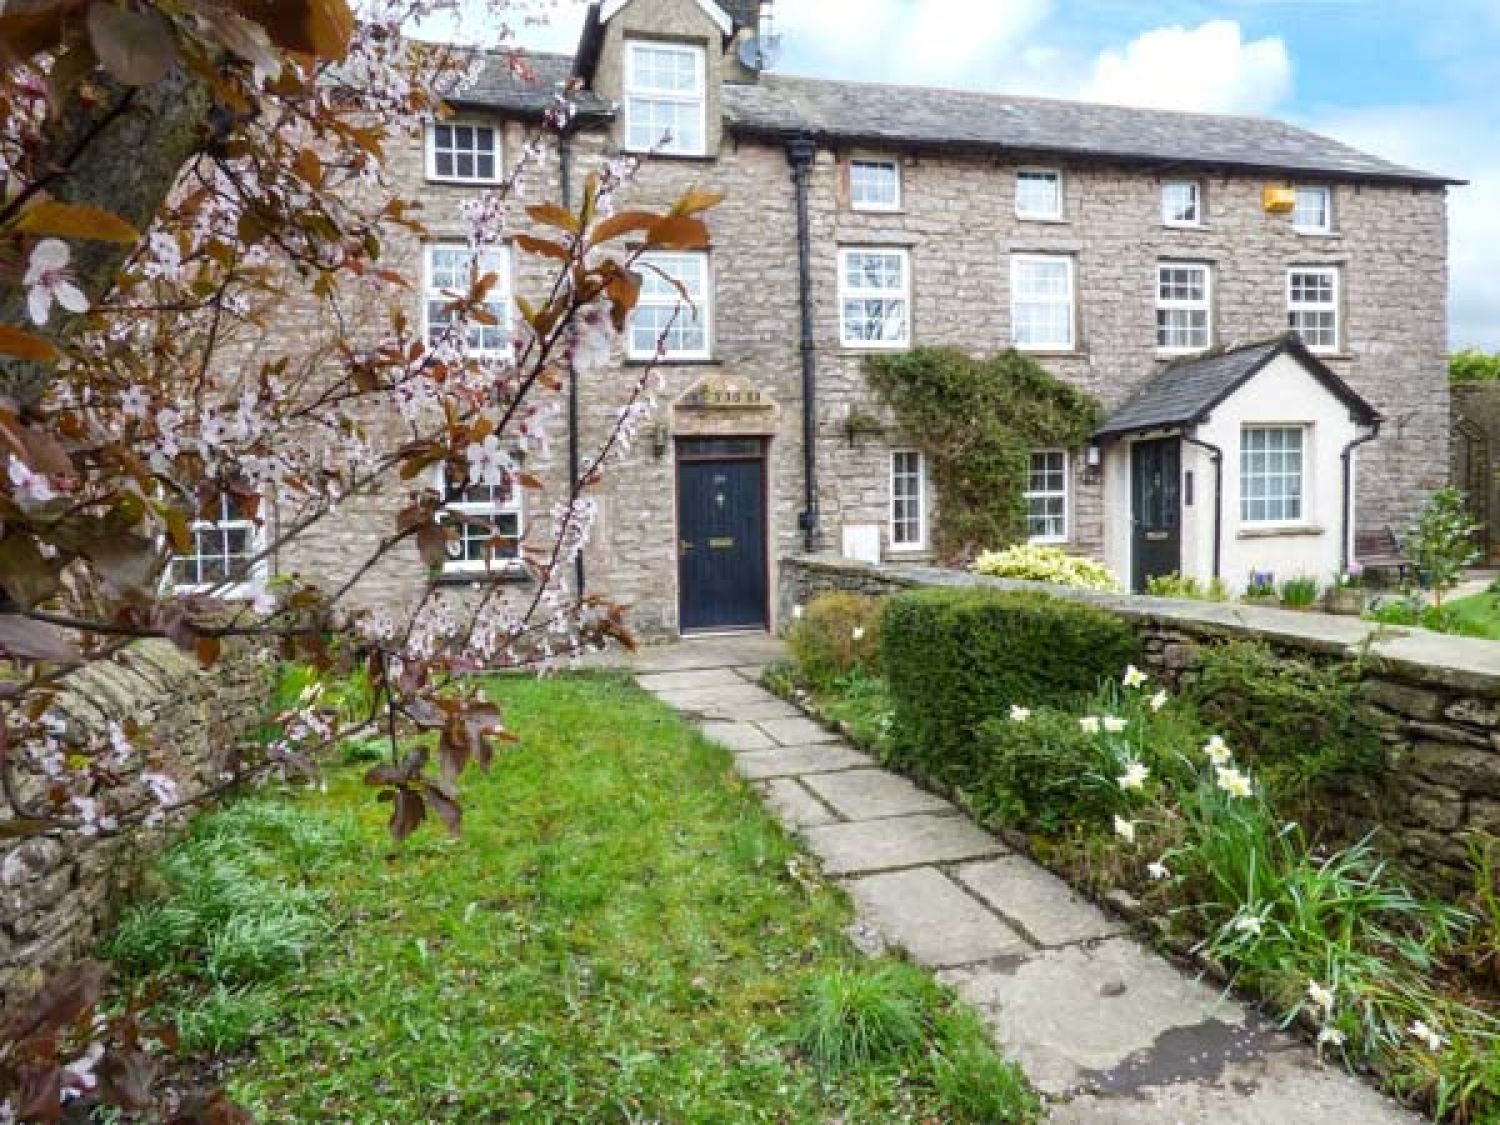 89 High Street - Lake District - 921698 - photo 1